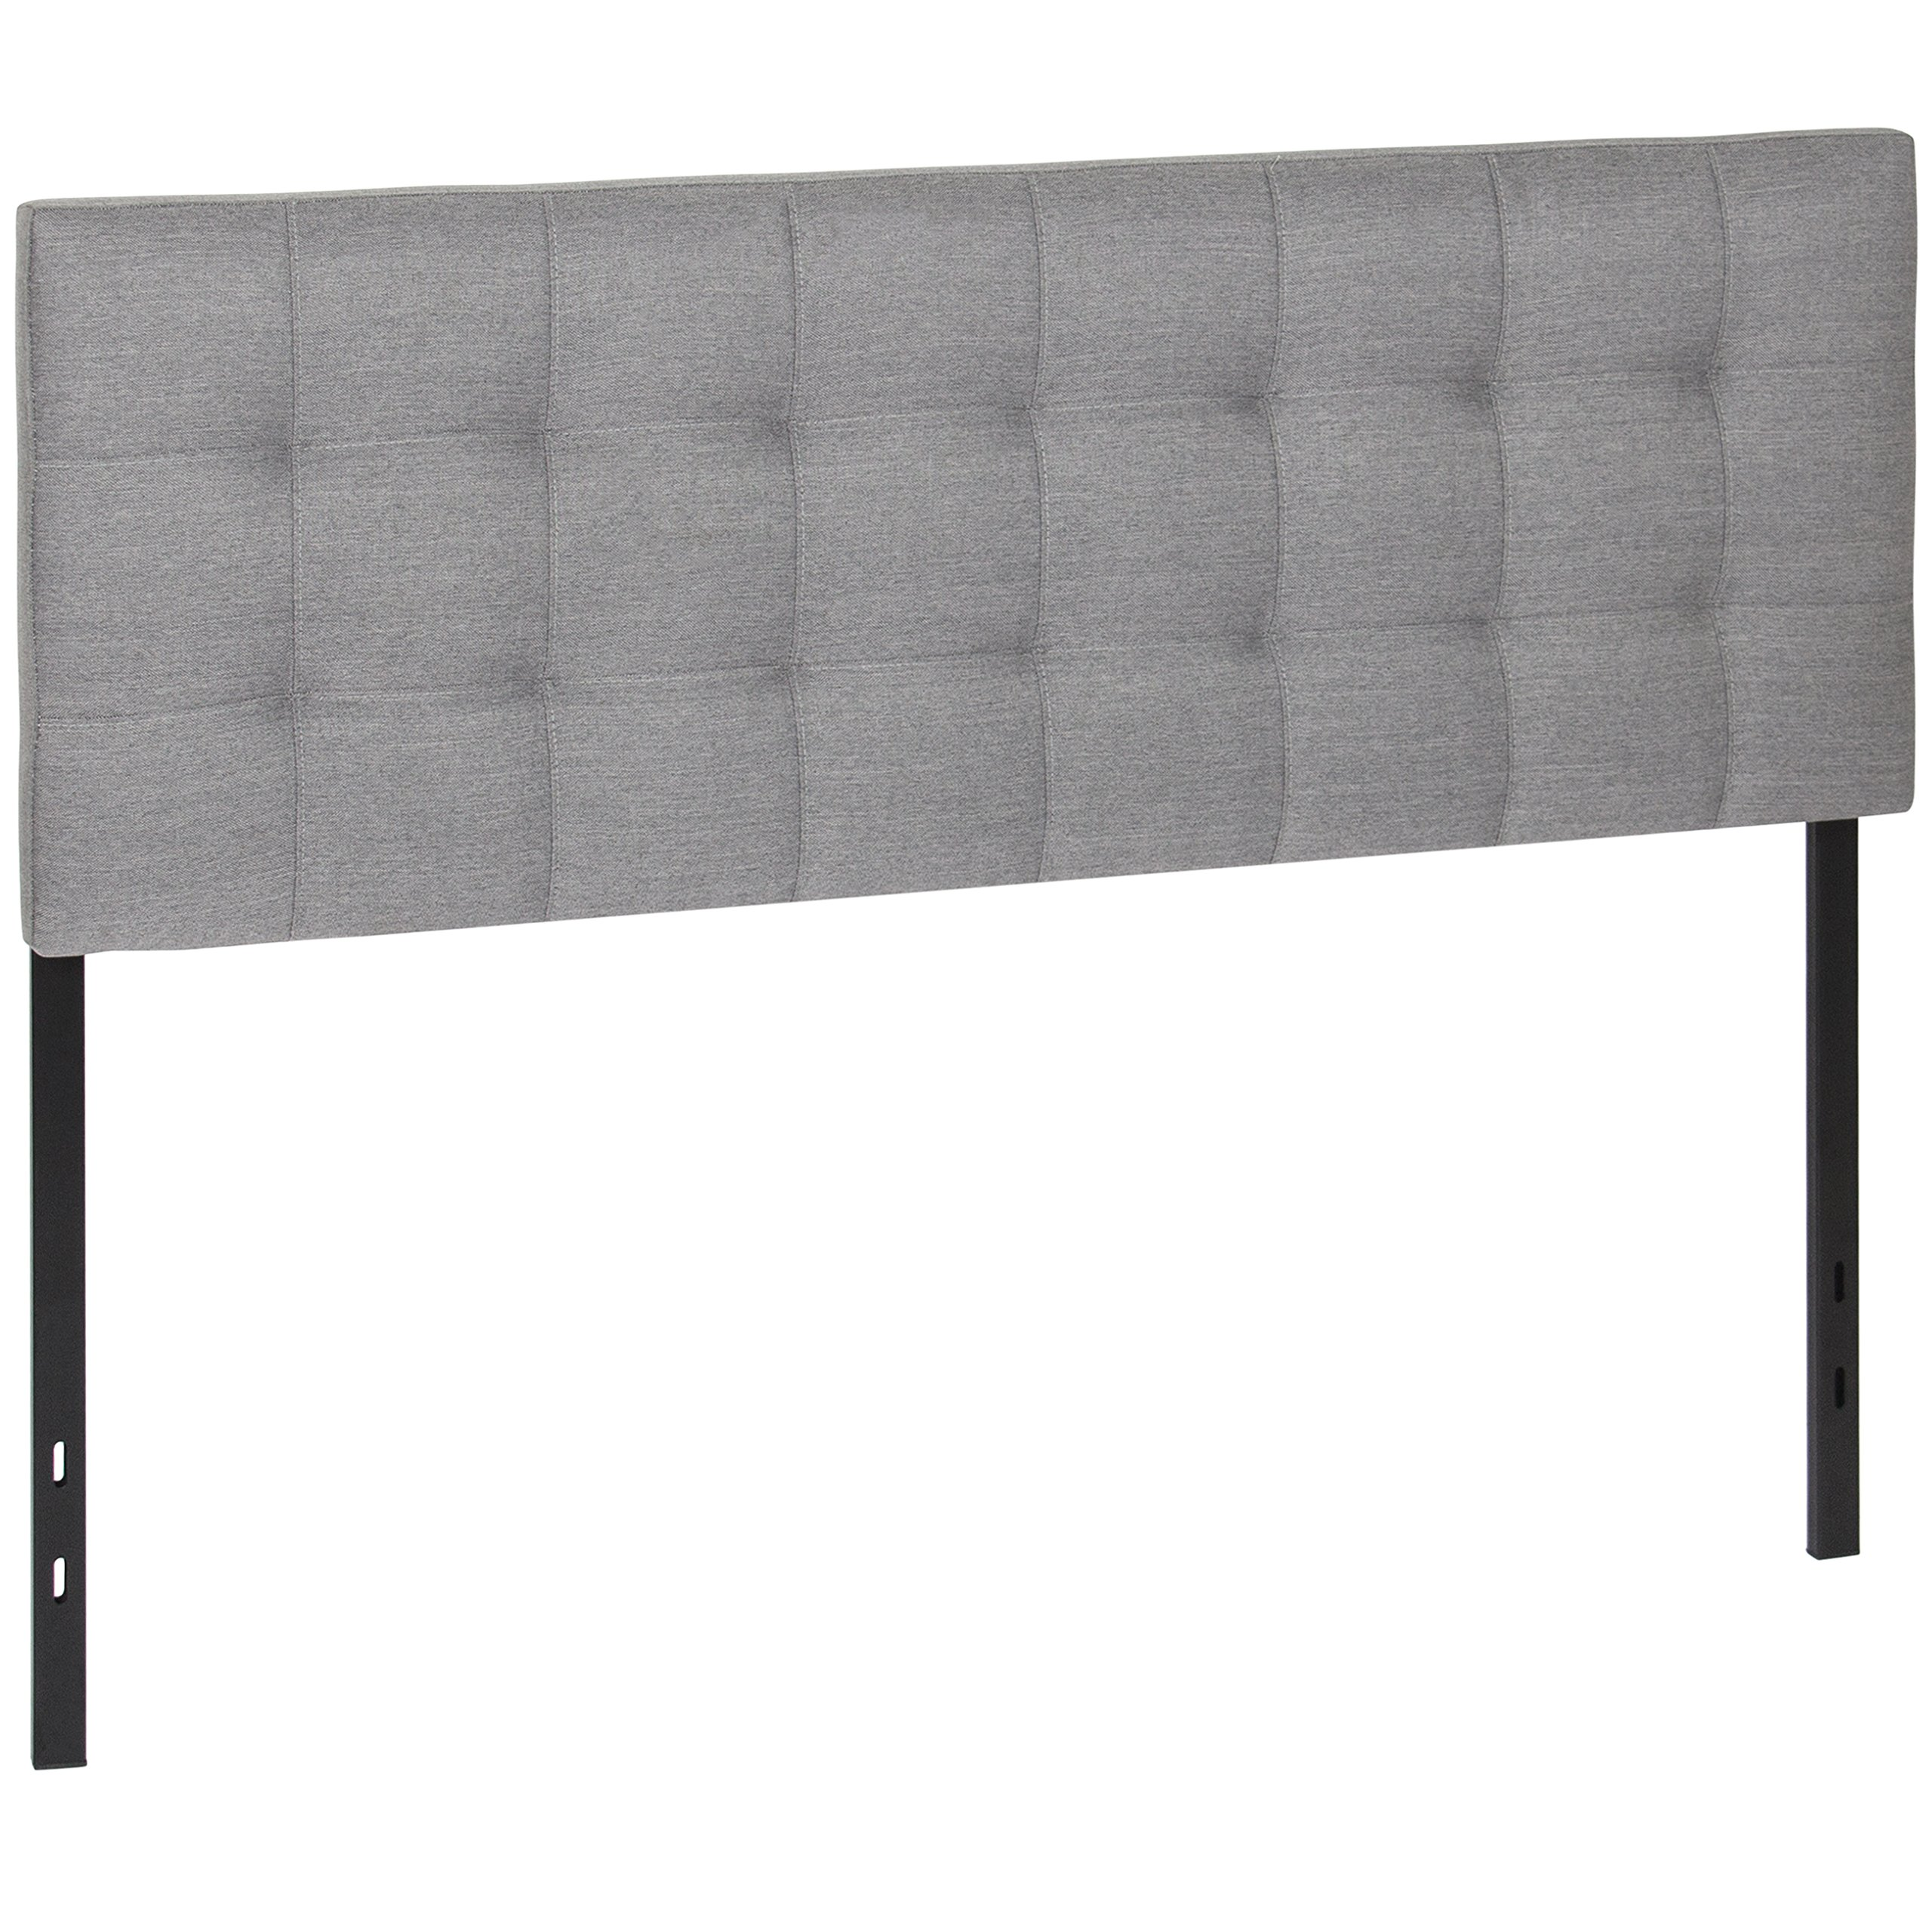 Best Choice Products Upholstered Tufted Fabric Queen Headboard - Gray